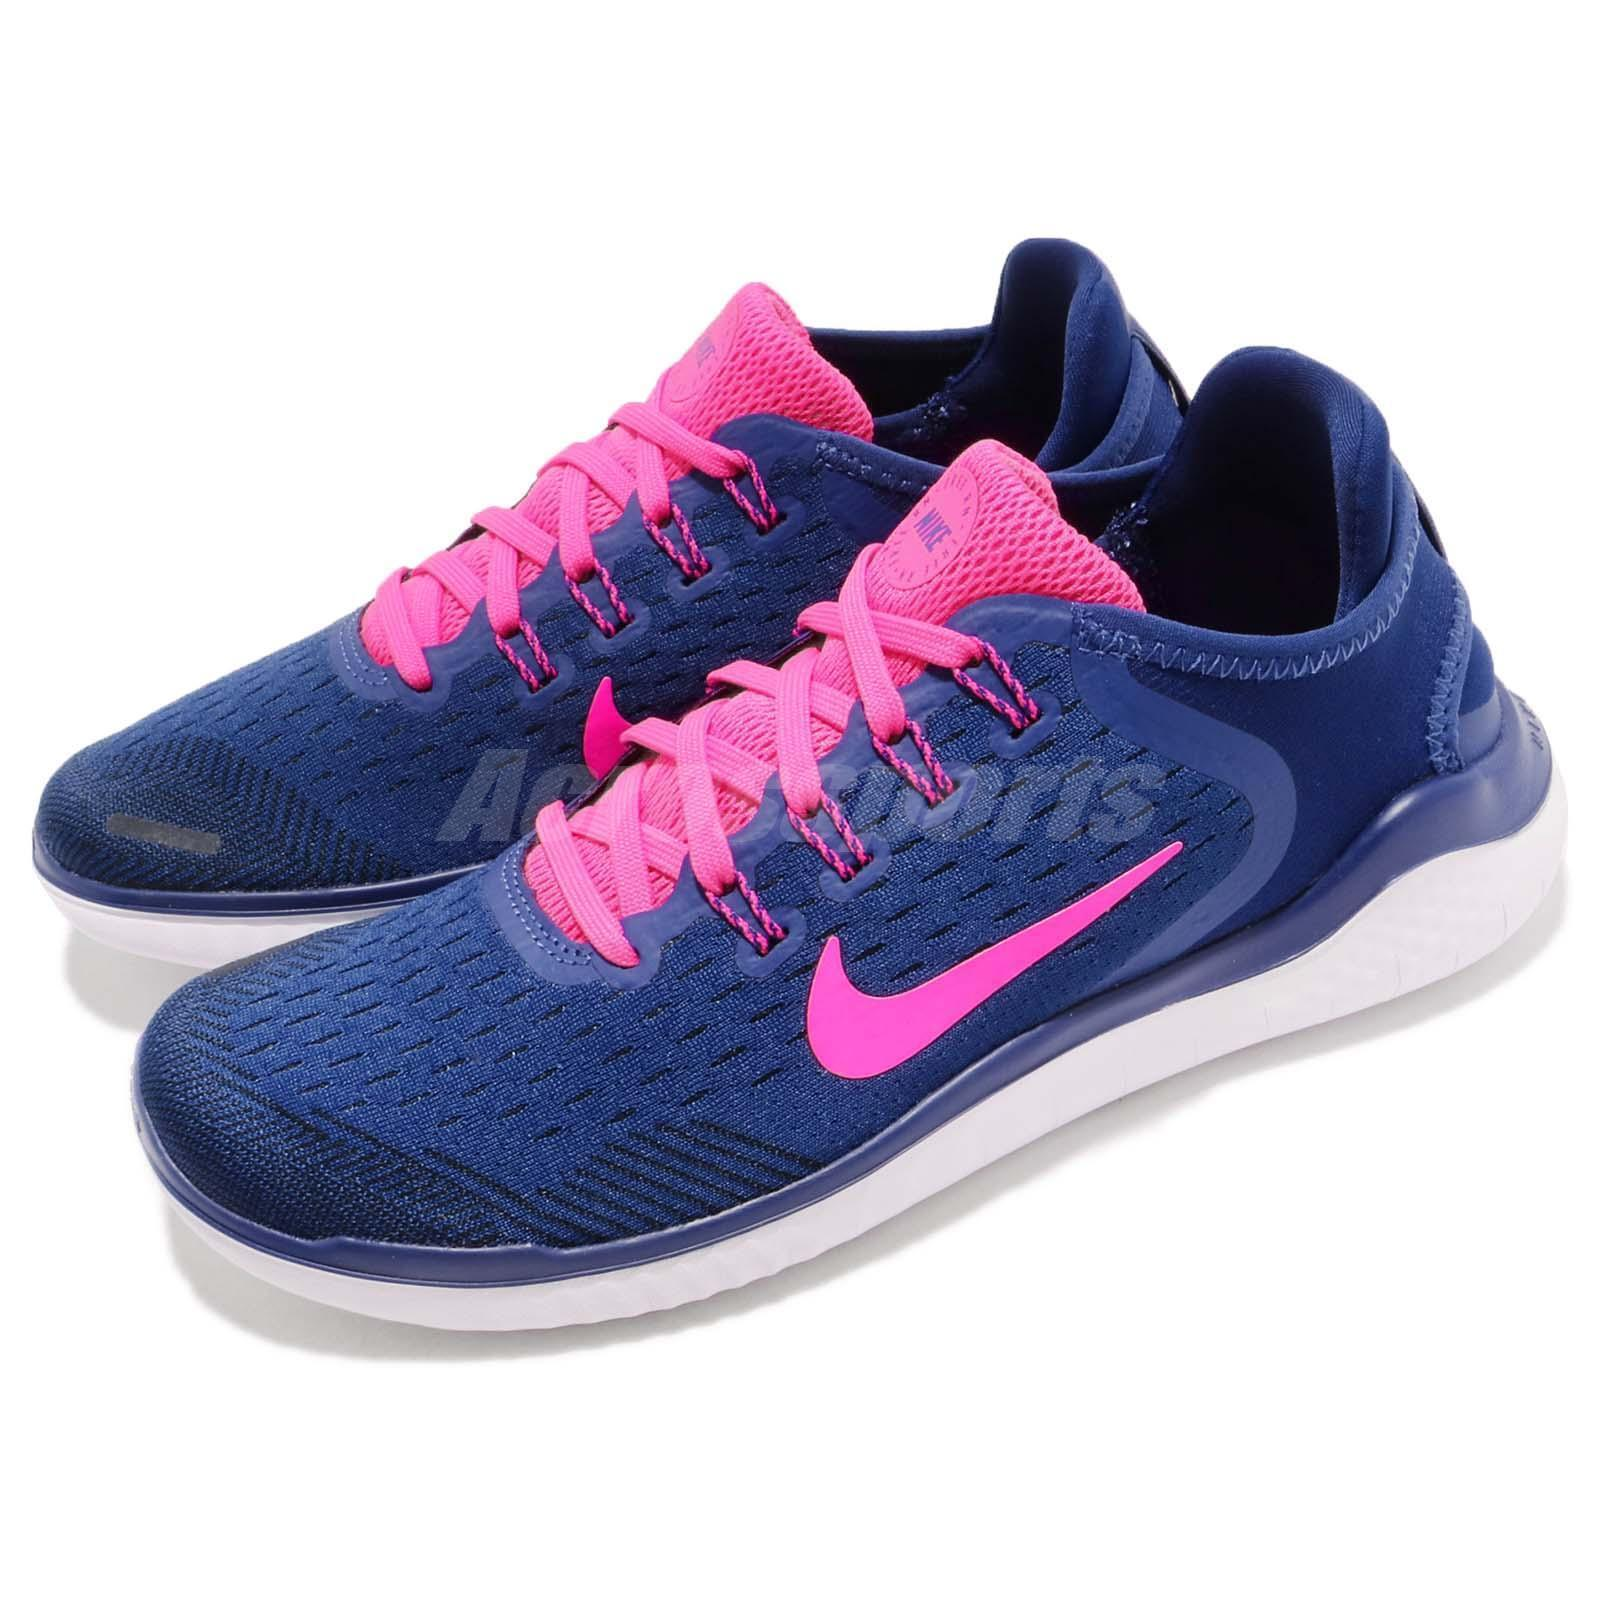 Nike Wmns Free RN 2018 bluee Pink White Women Running shoes Sneakers 942837-403